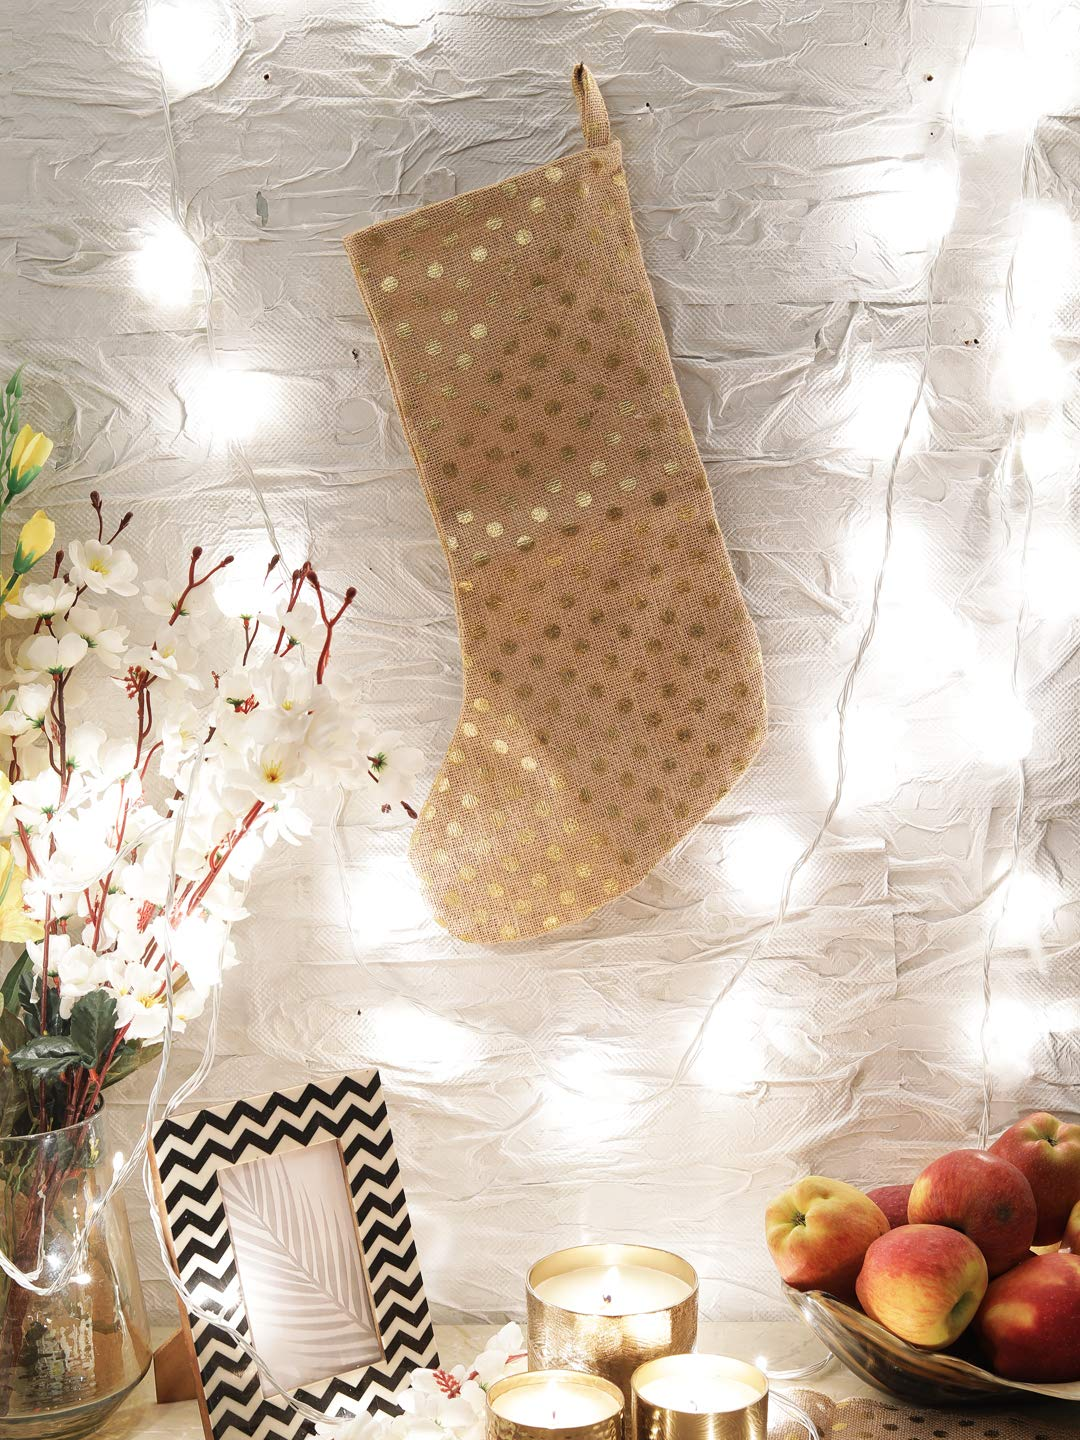 Christmas Jute Stocking Natural Jute Christmas Stocking Fireplace Hanging for Gifts Goodies Handmade Projects